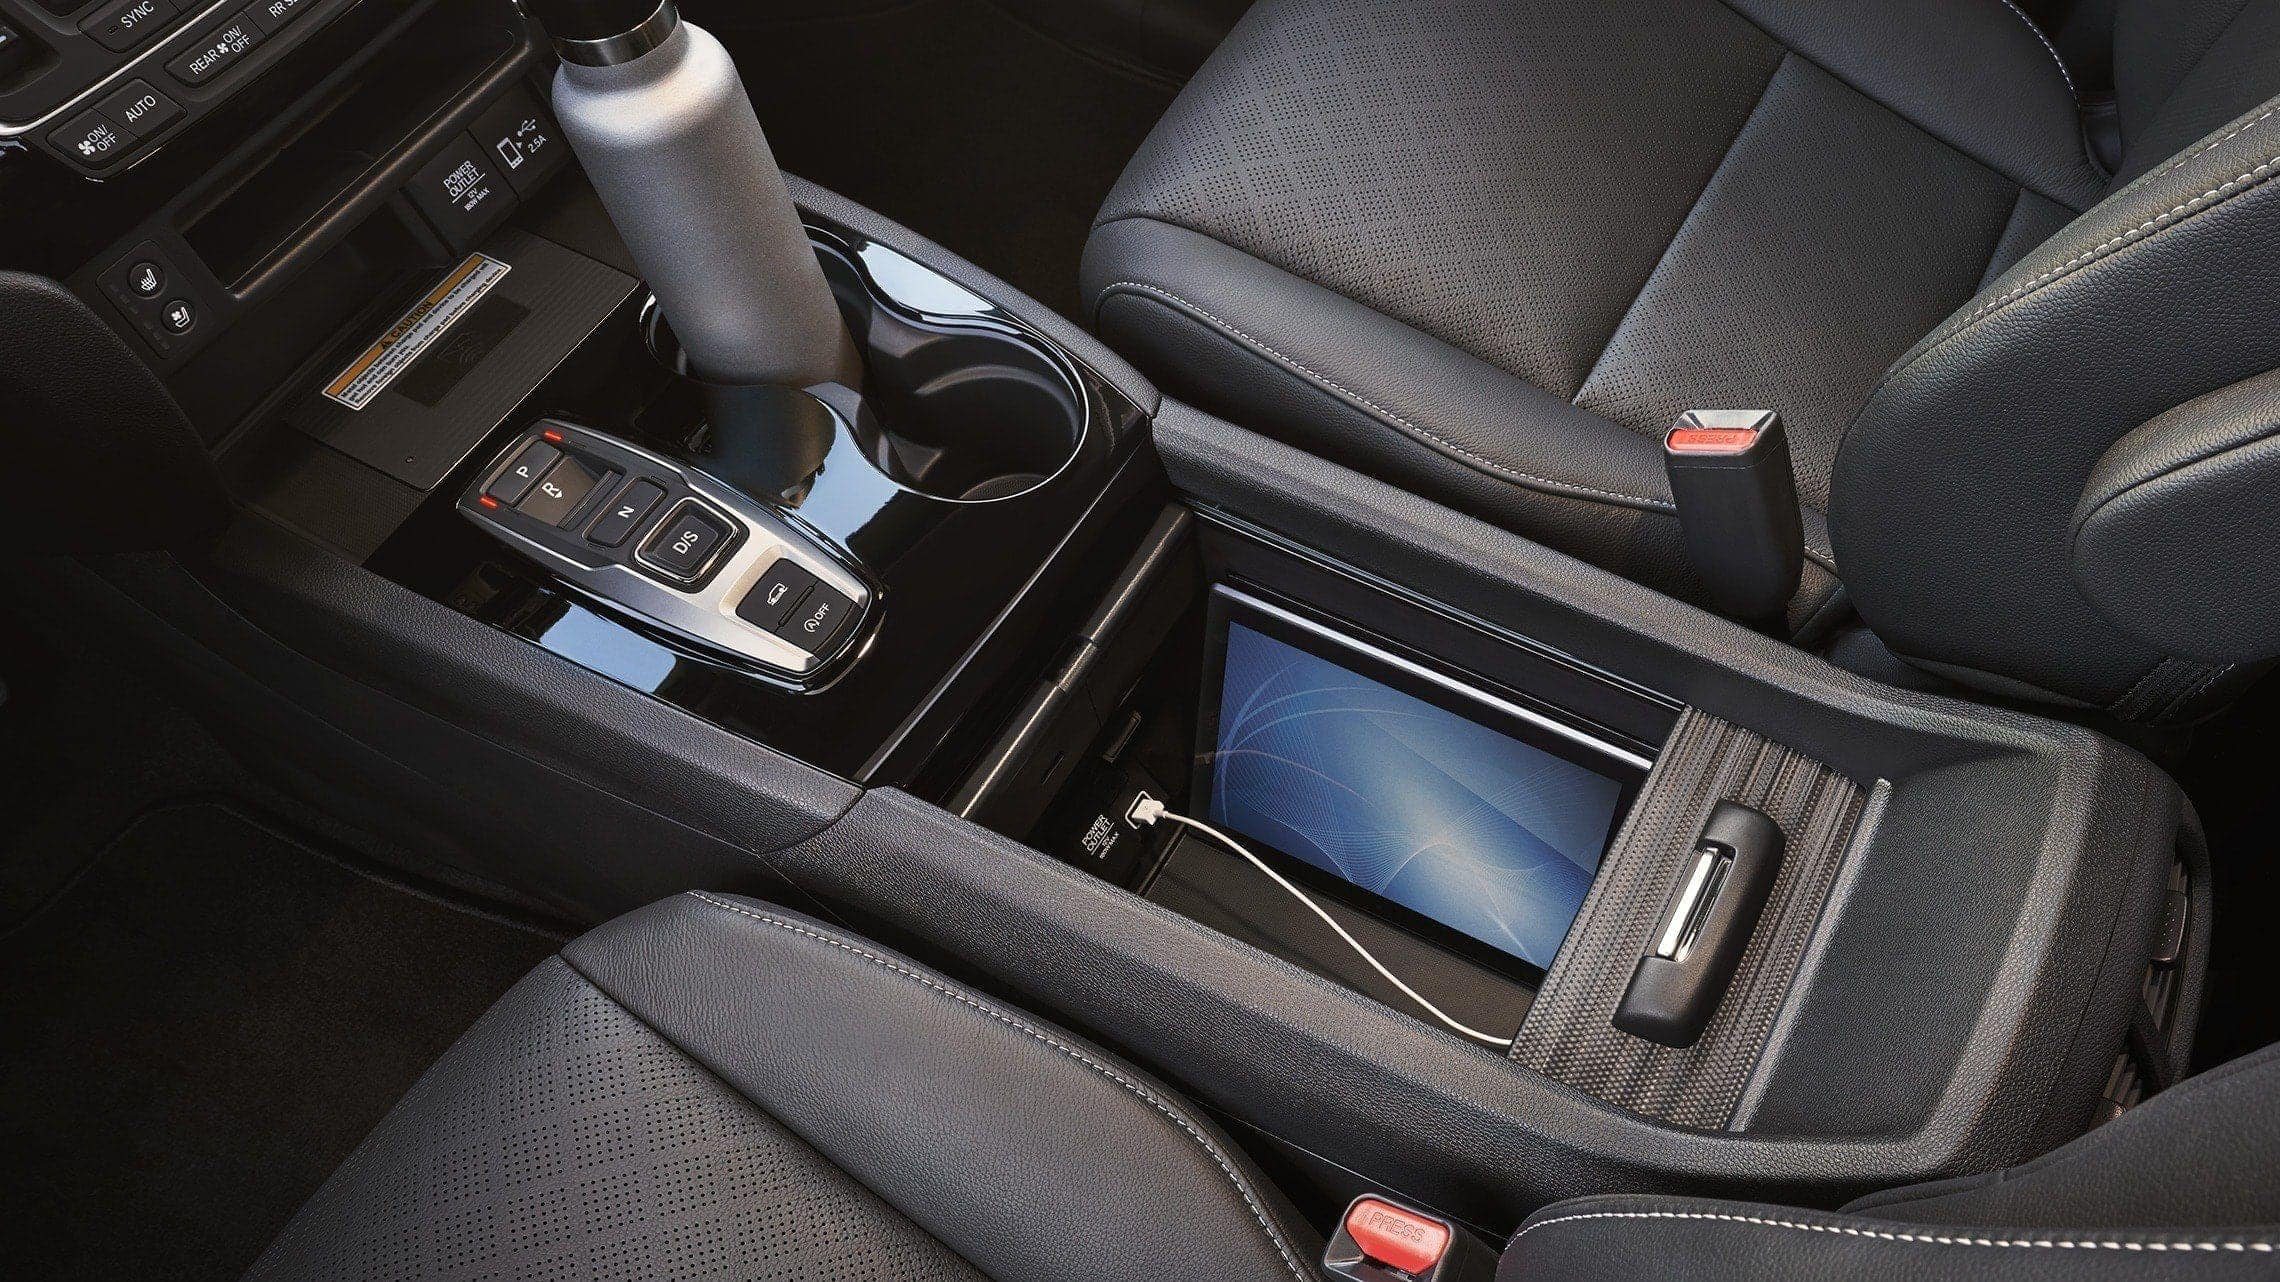 2019 Honda Passport Elite with Black Leather interior displaying multi-functional center console.